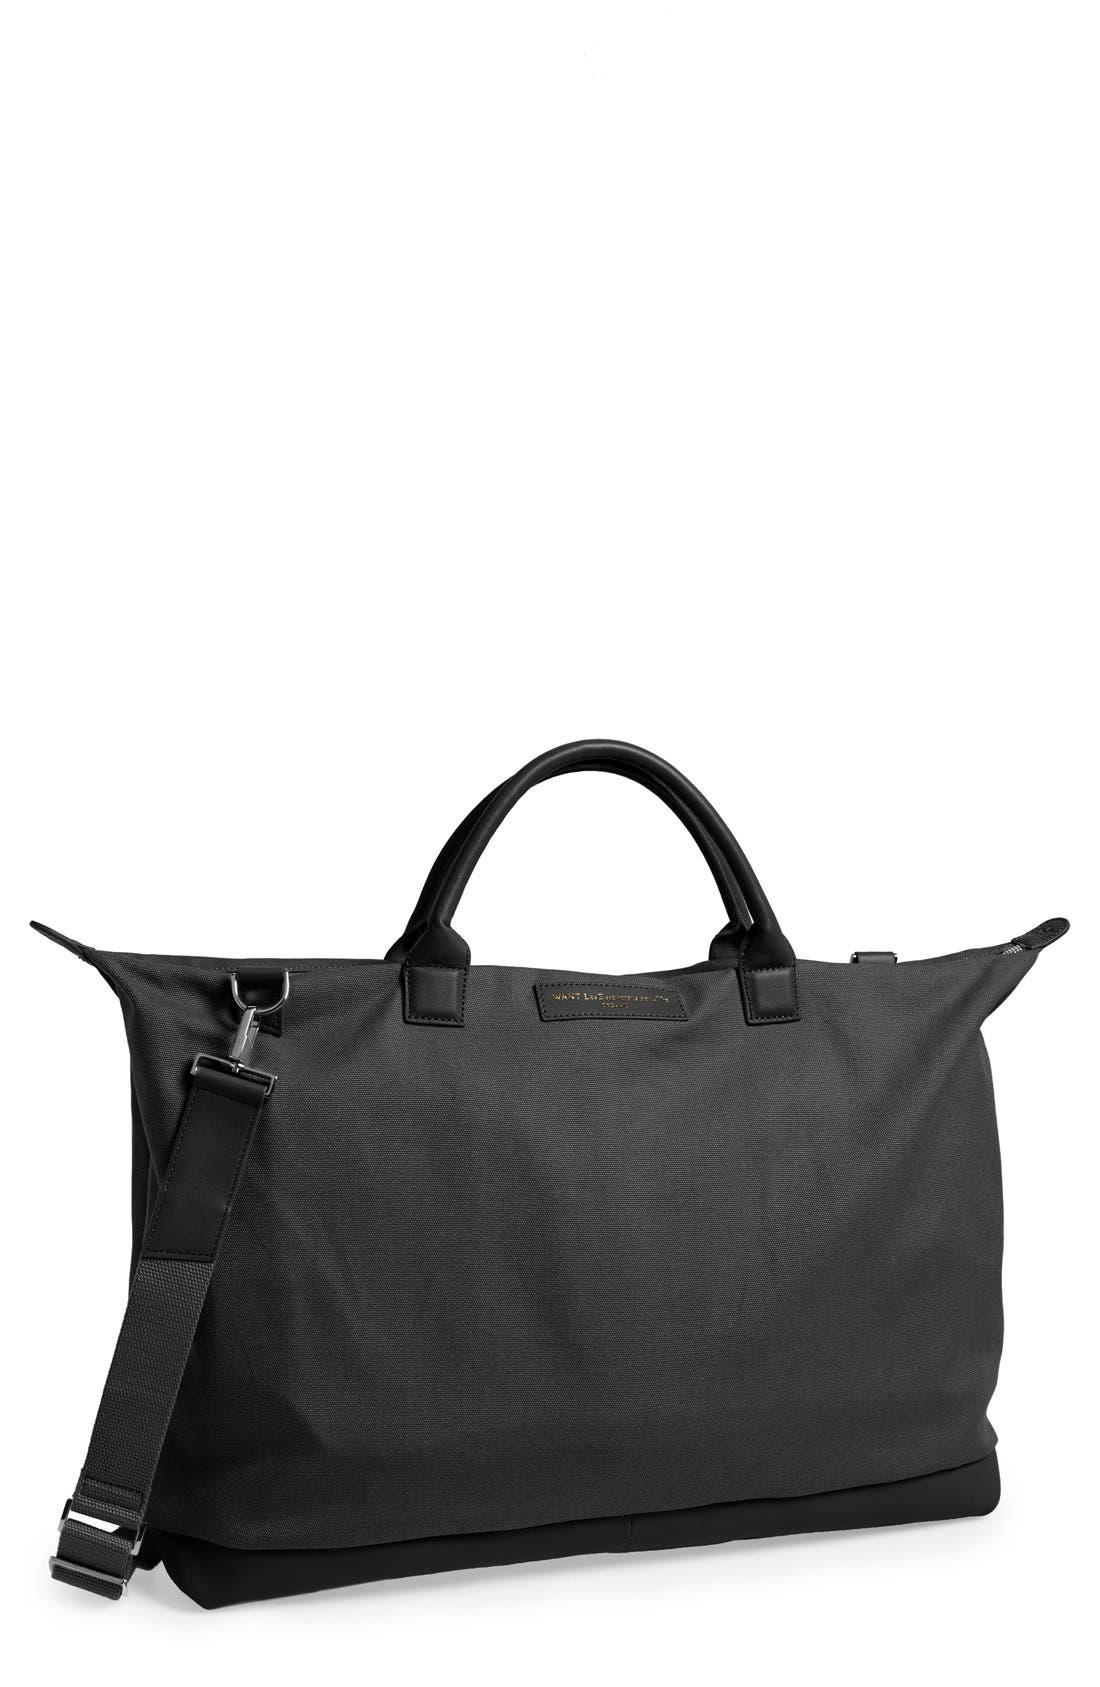 WANT Les Essentiels de la Vie 'Hartsfield' Organic Cotton Tote